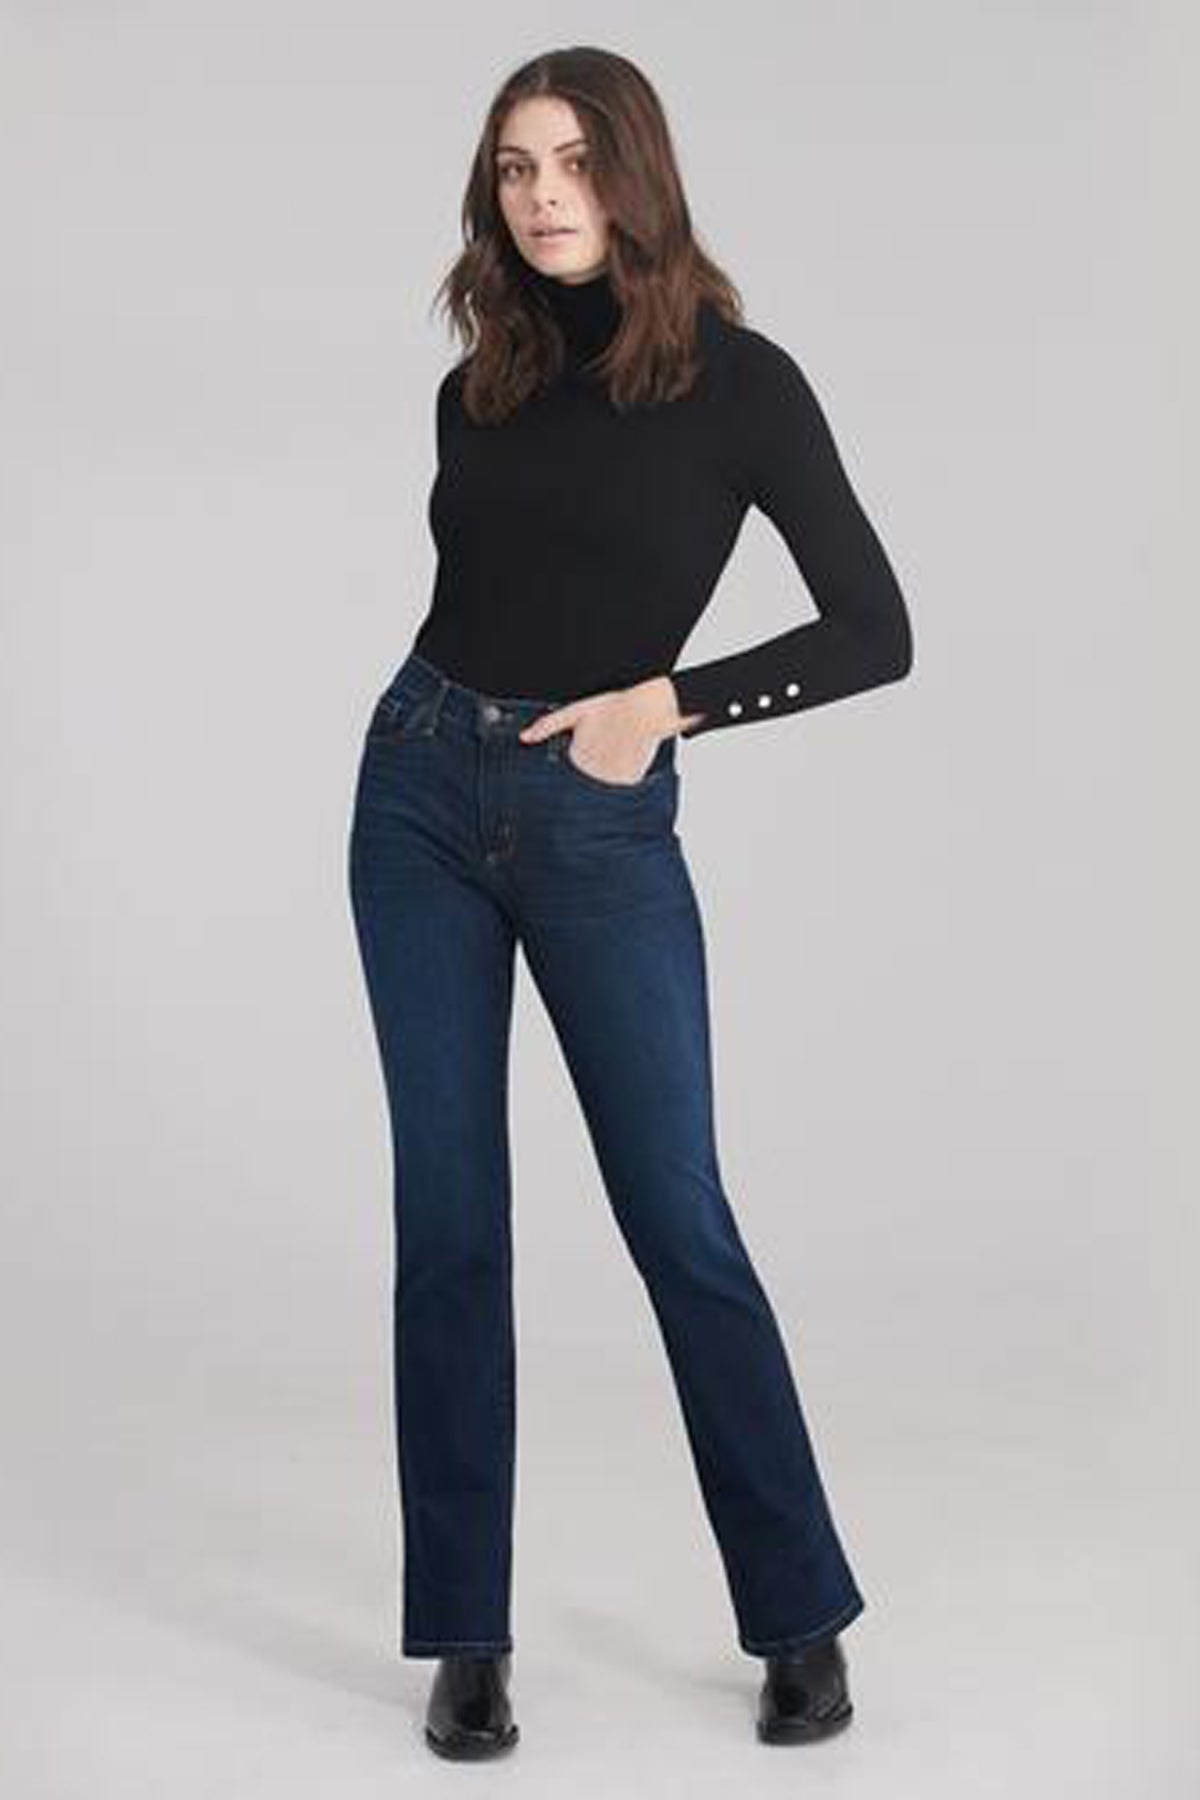 Classic Rise Straight Yoga Jean, Namaste, classic rise waist, straight cut, 32 inch inseam, sizes 24-34, made in Canada